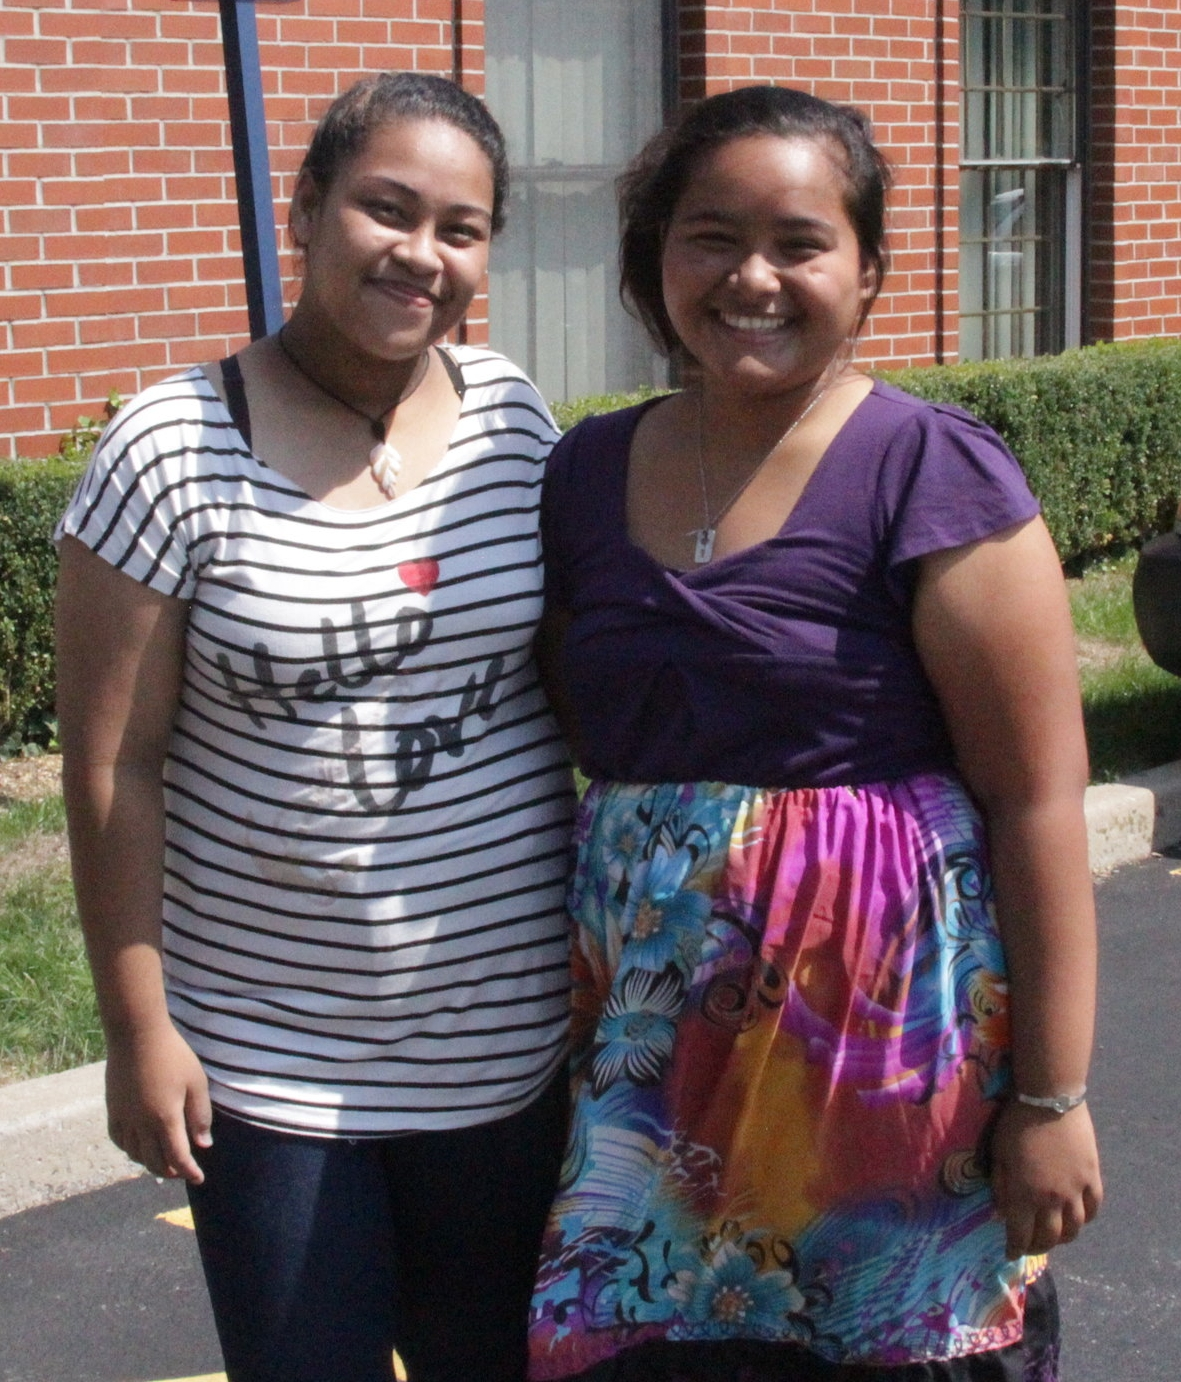 Krystal Saimon & Annalyn Tareg have both moved from Micronesia to Buffalo, NY to study at Canisius College (Photo by Canisius College)